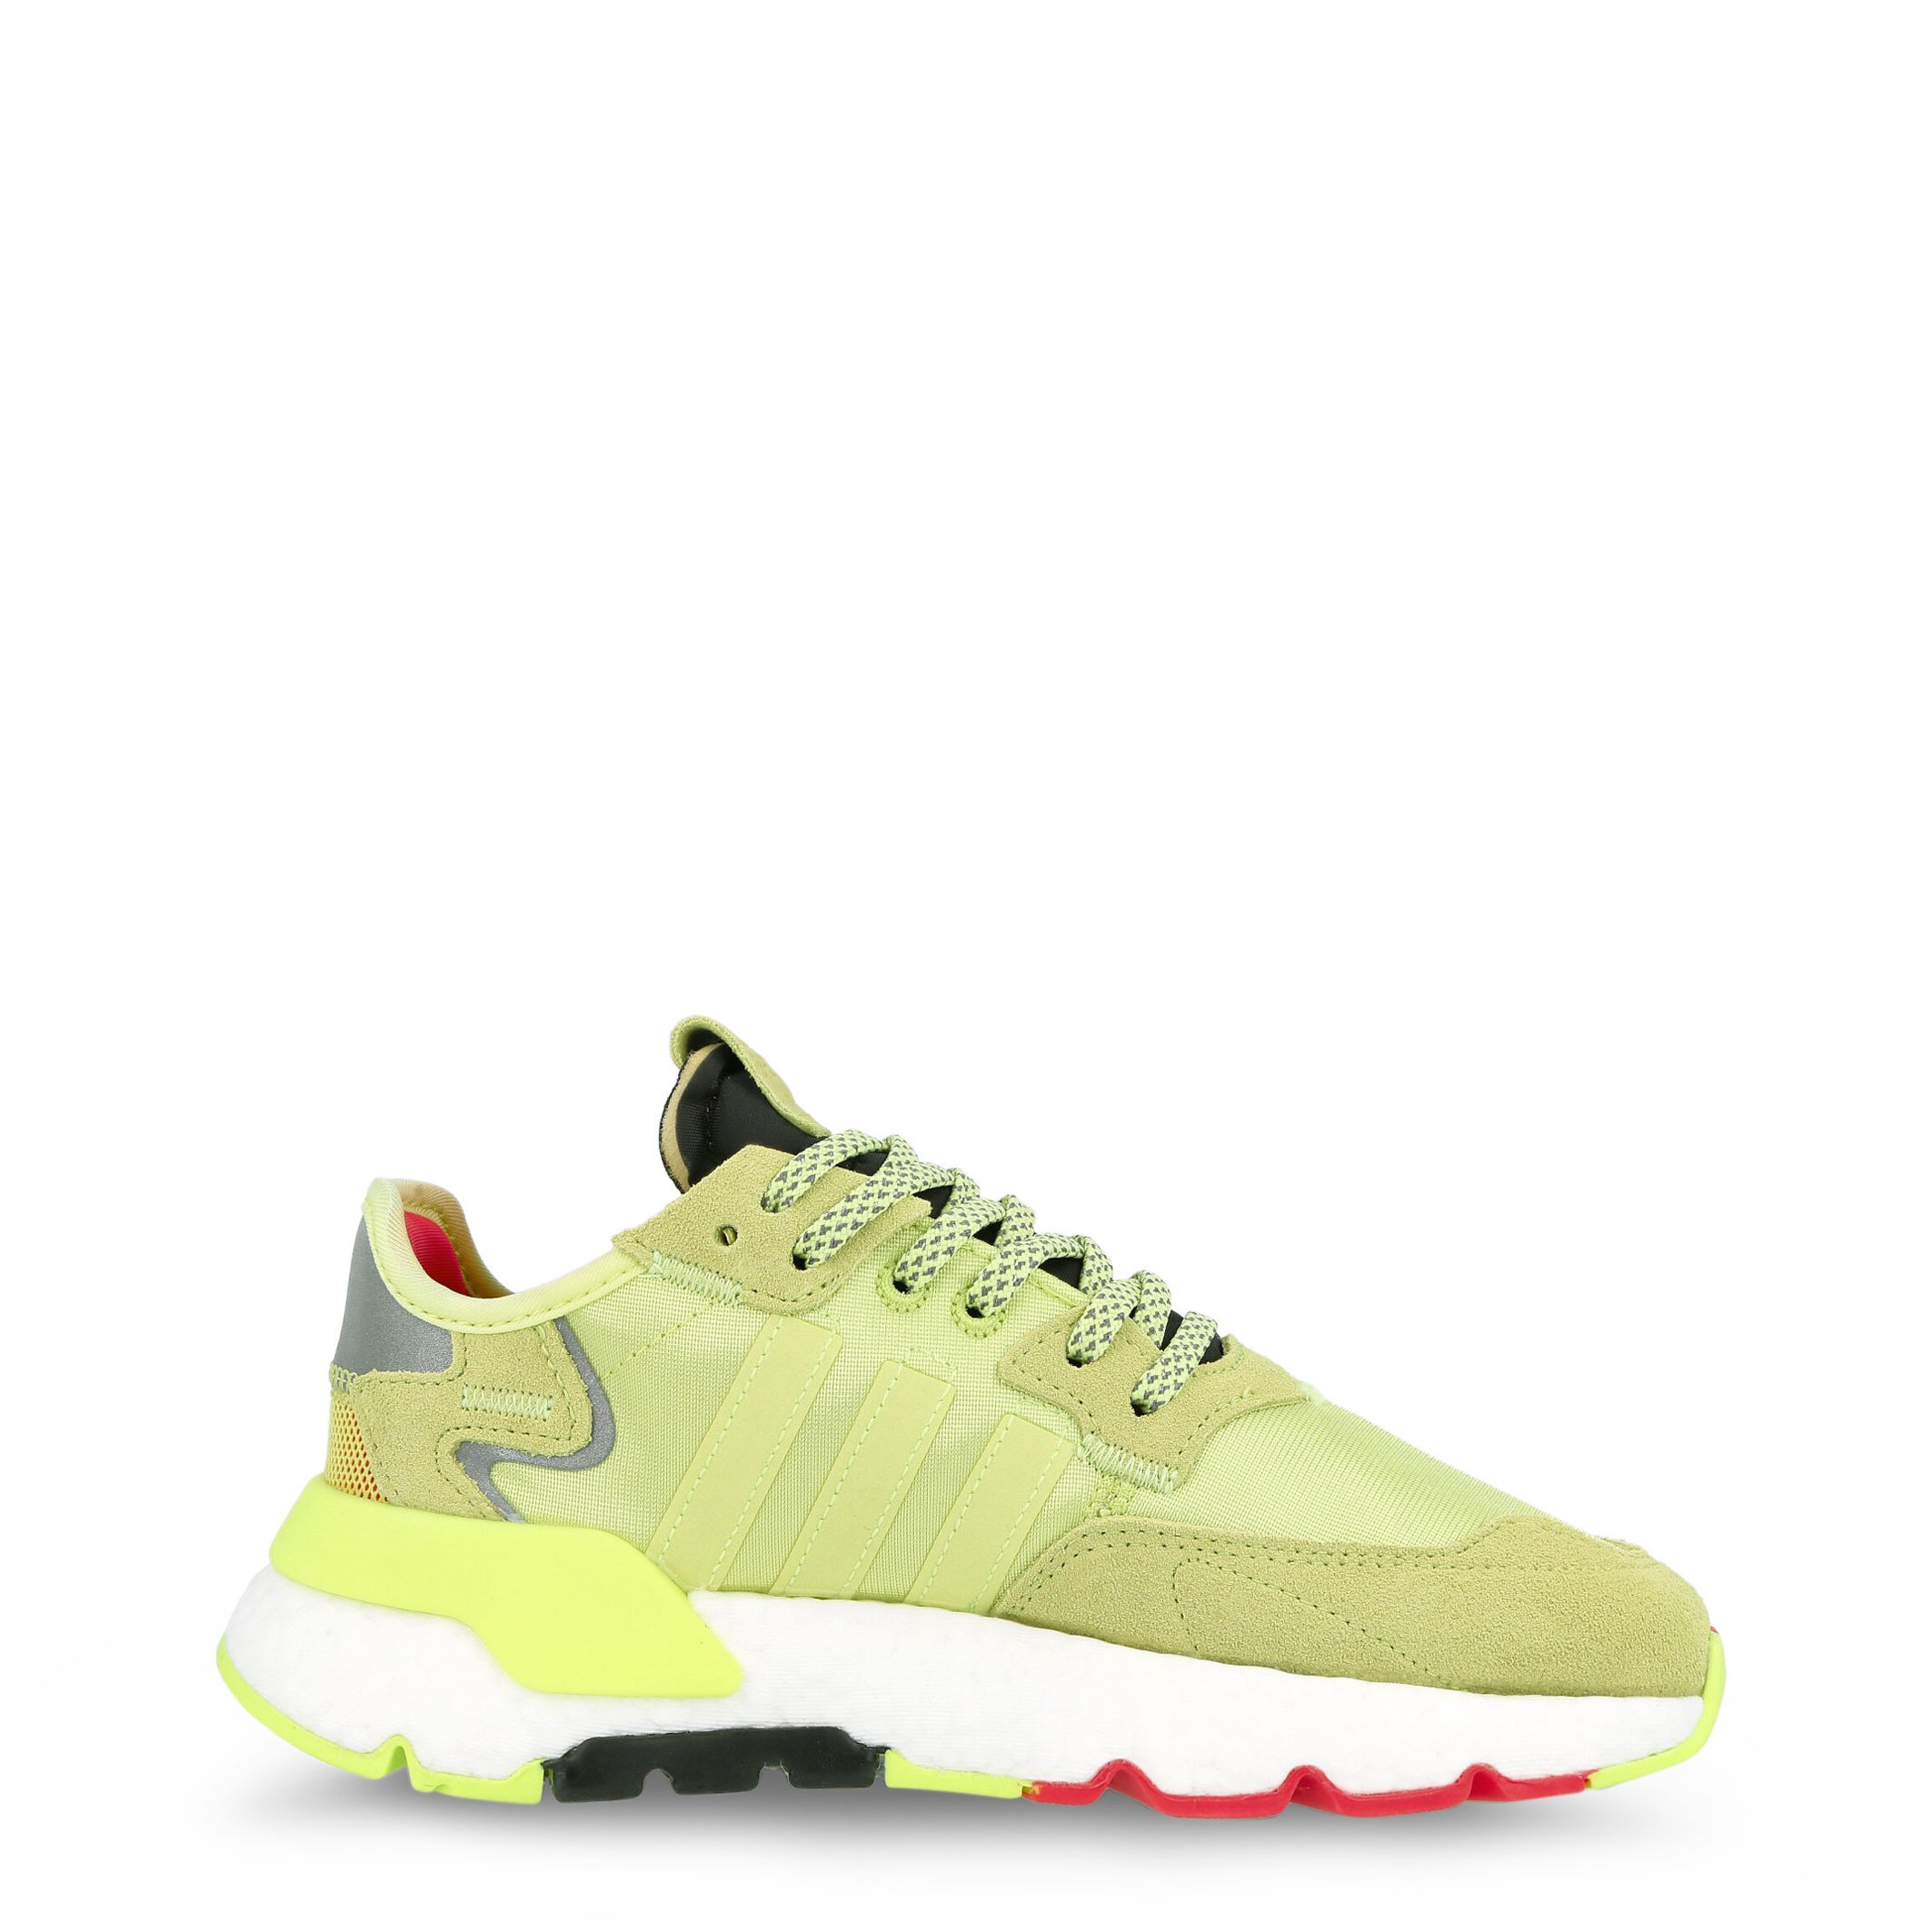 Adidas Men's Nite Jogger Trainers Various Colours EE5851 - yellow 5.5 UK